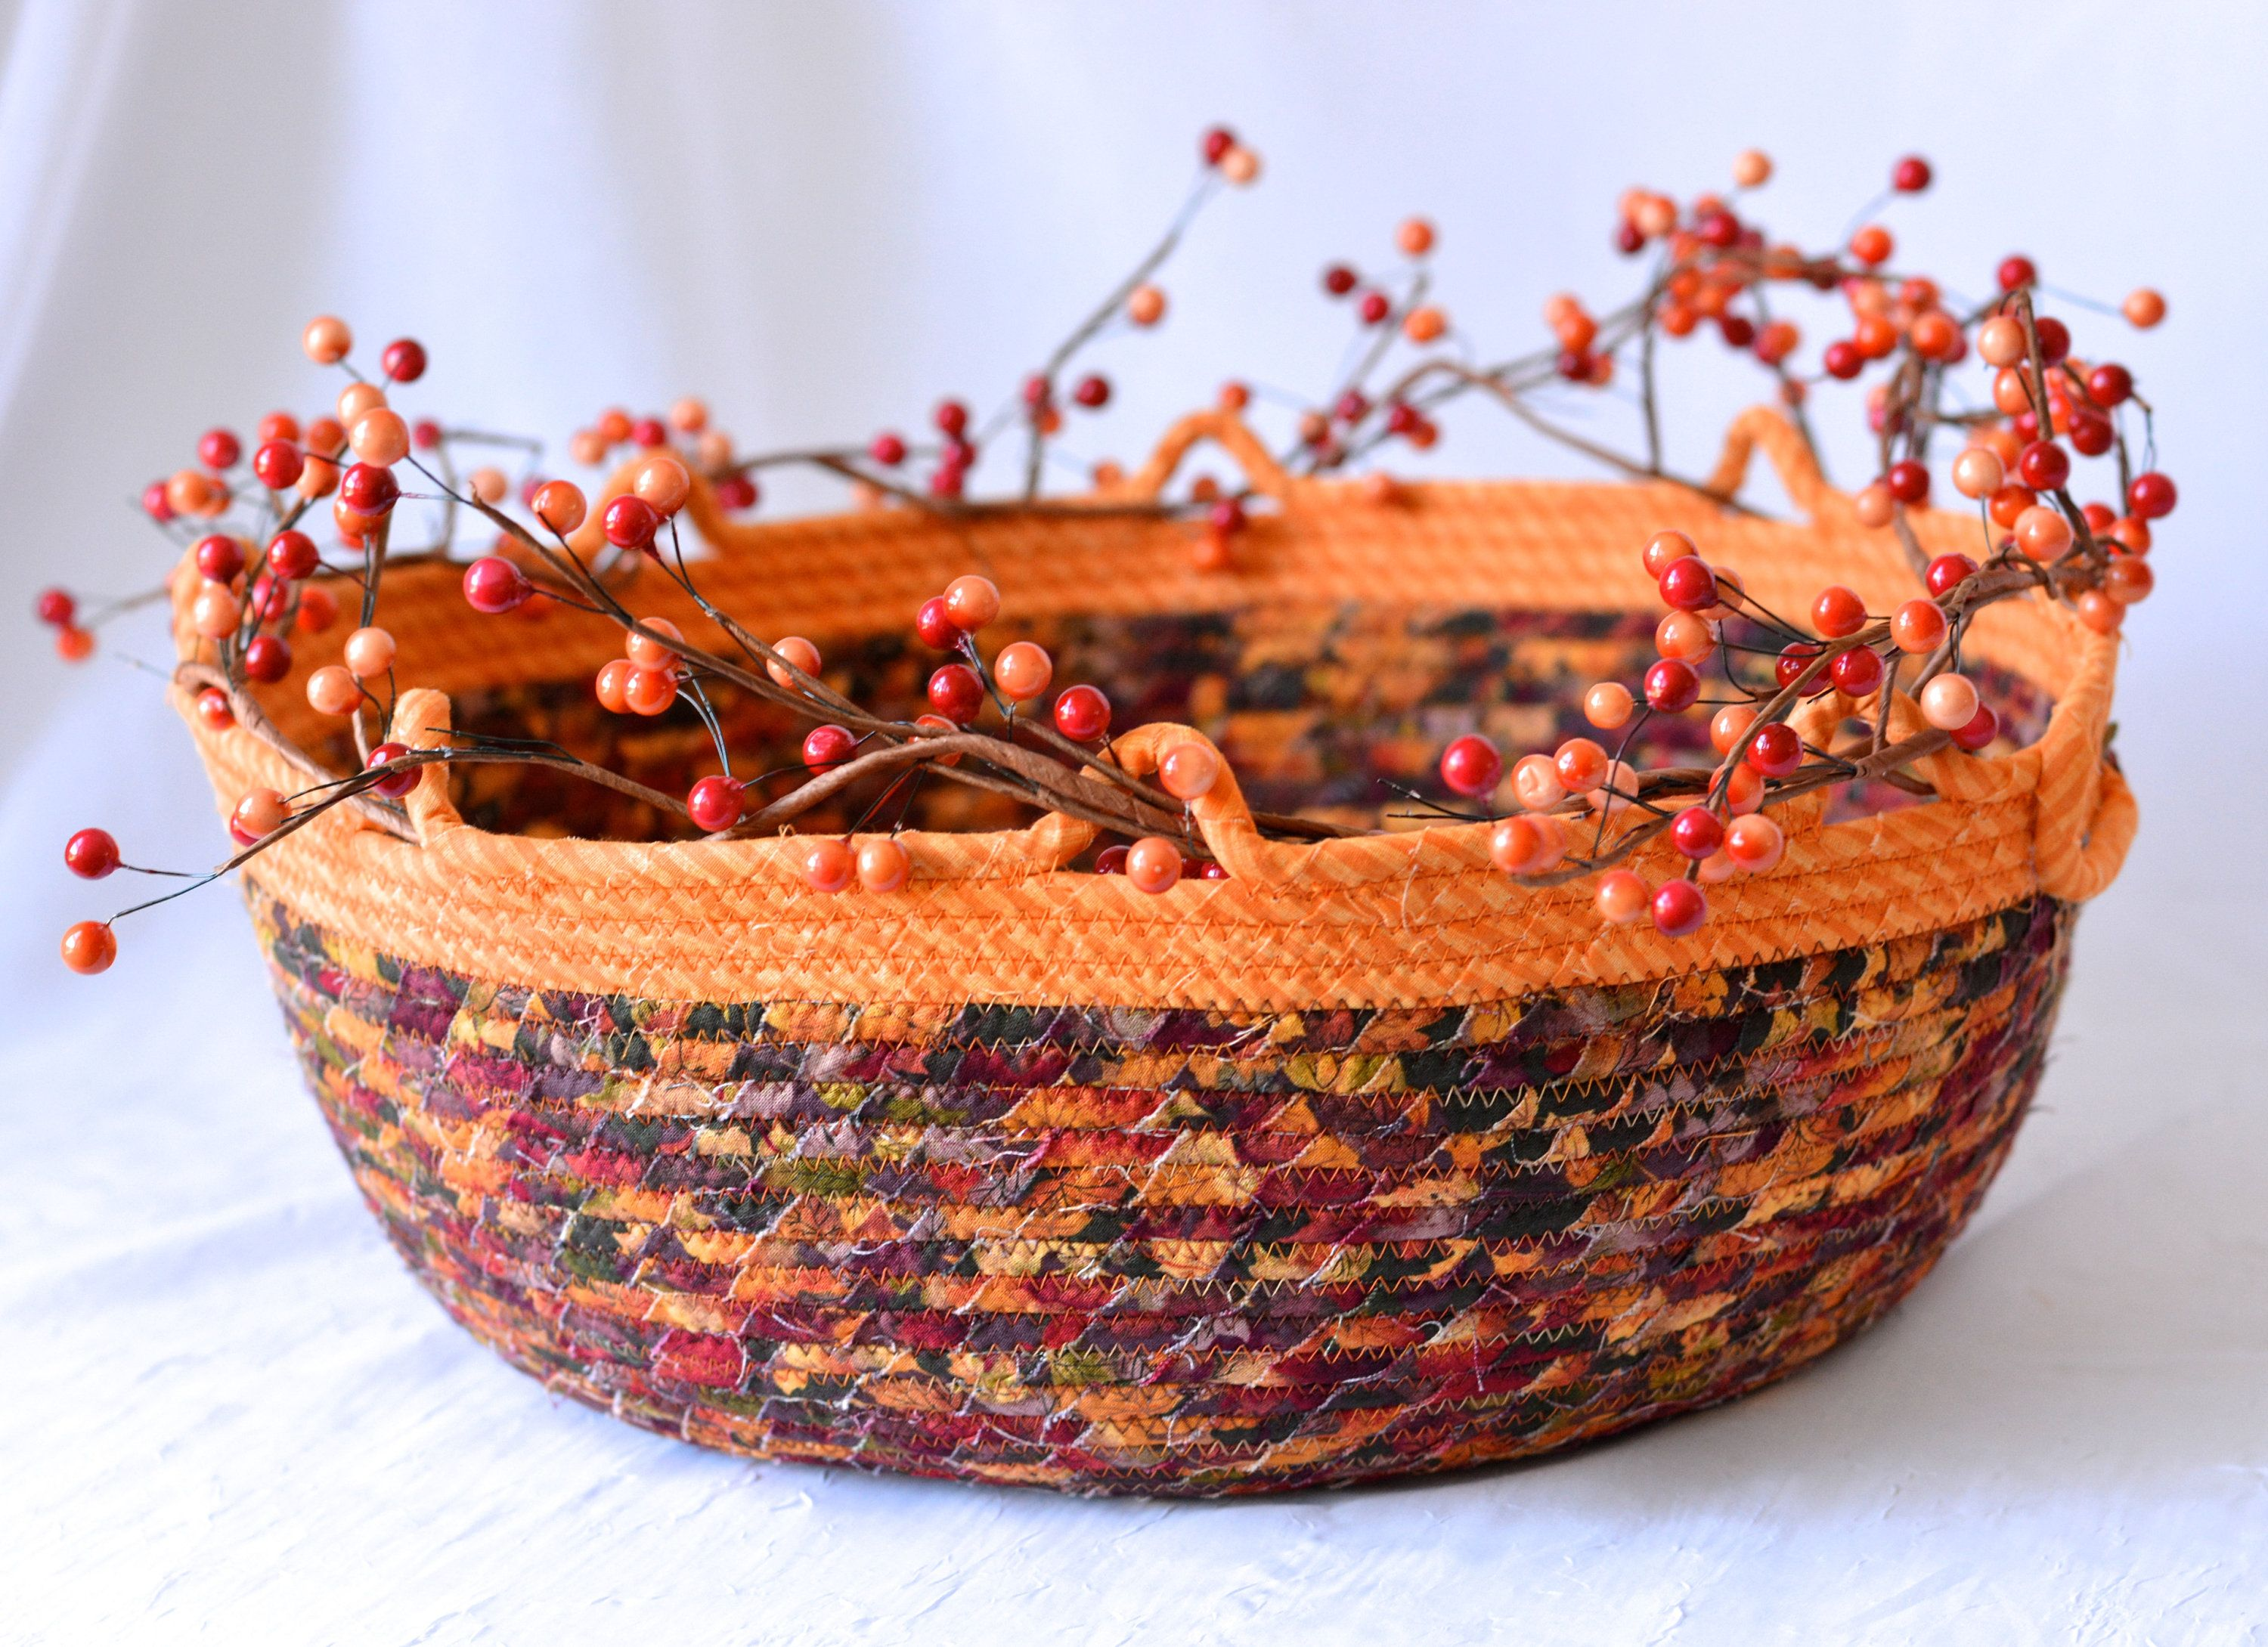 Thanksgiving Decor Basket, Fall Rope Coiled Basket, Country Gift Basket, Napkin Holder, Fall Table Centerpiece, Fruit Bowl